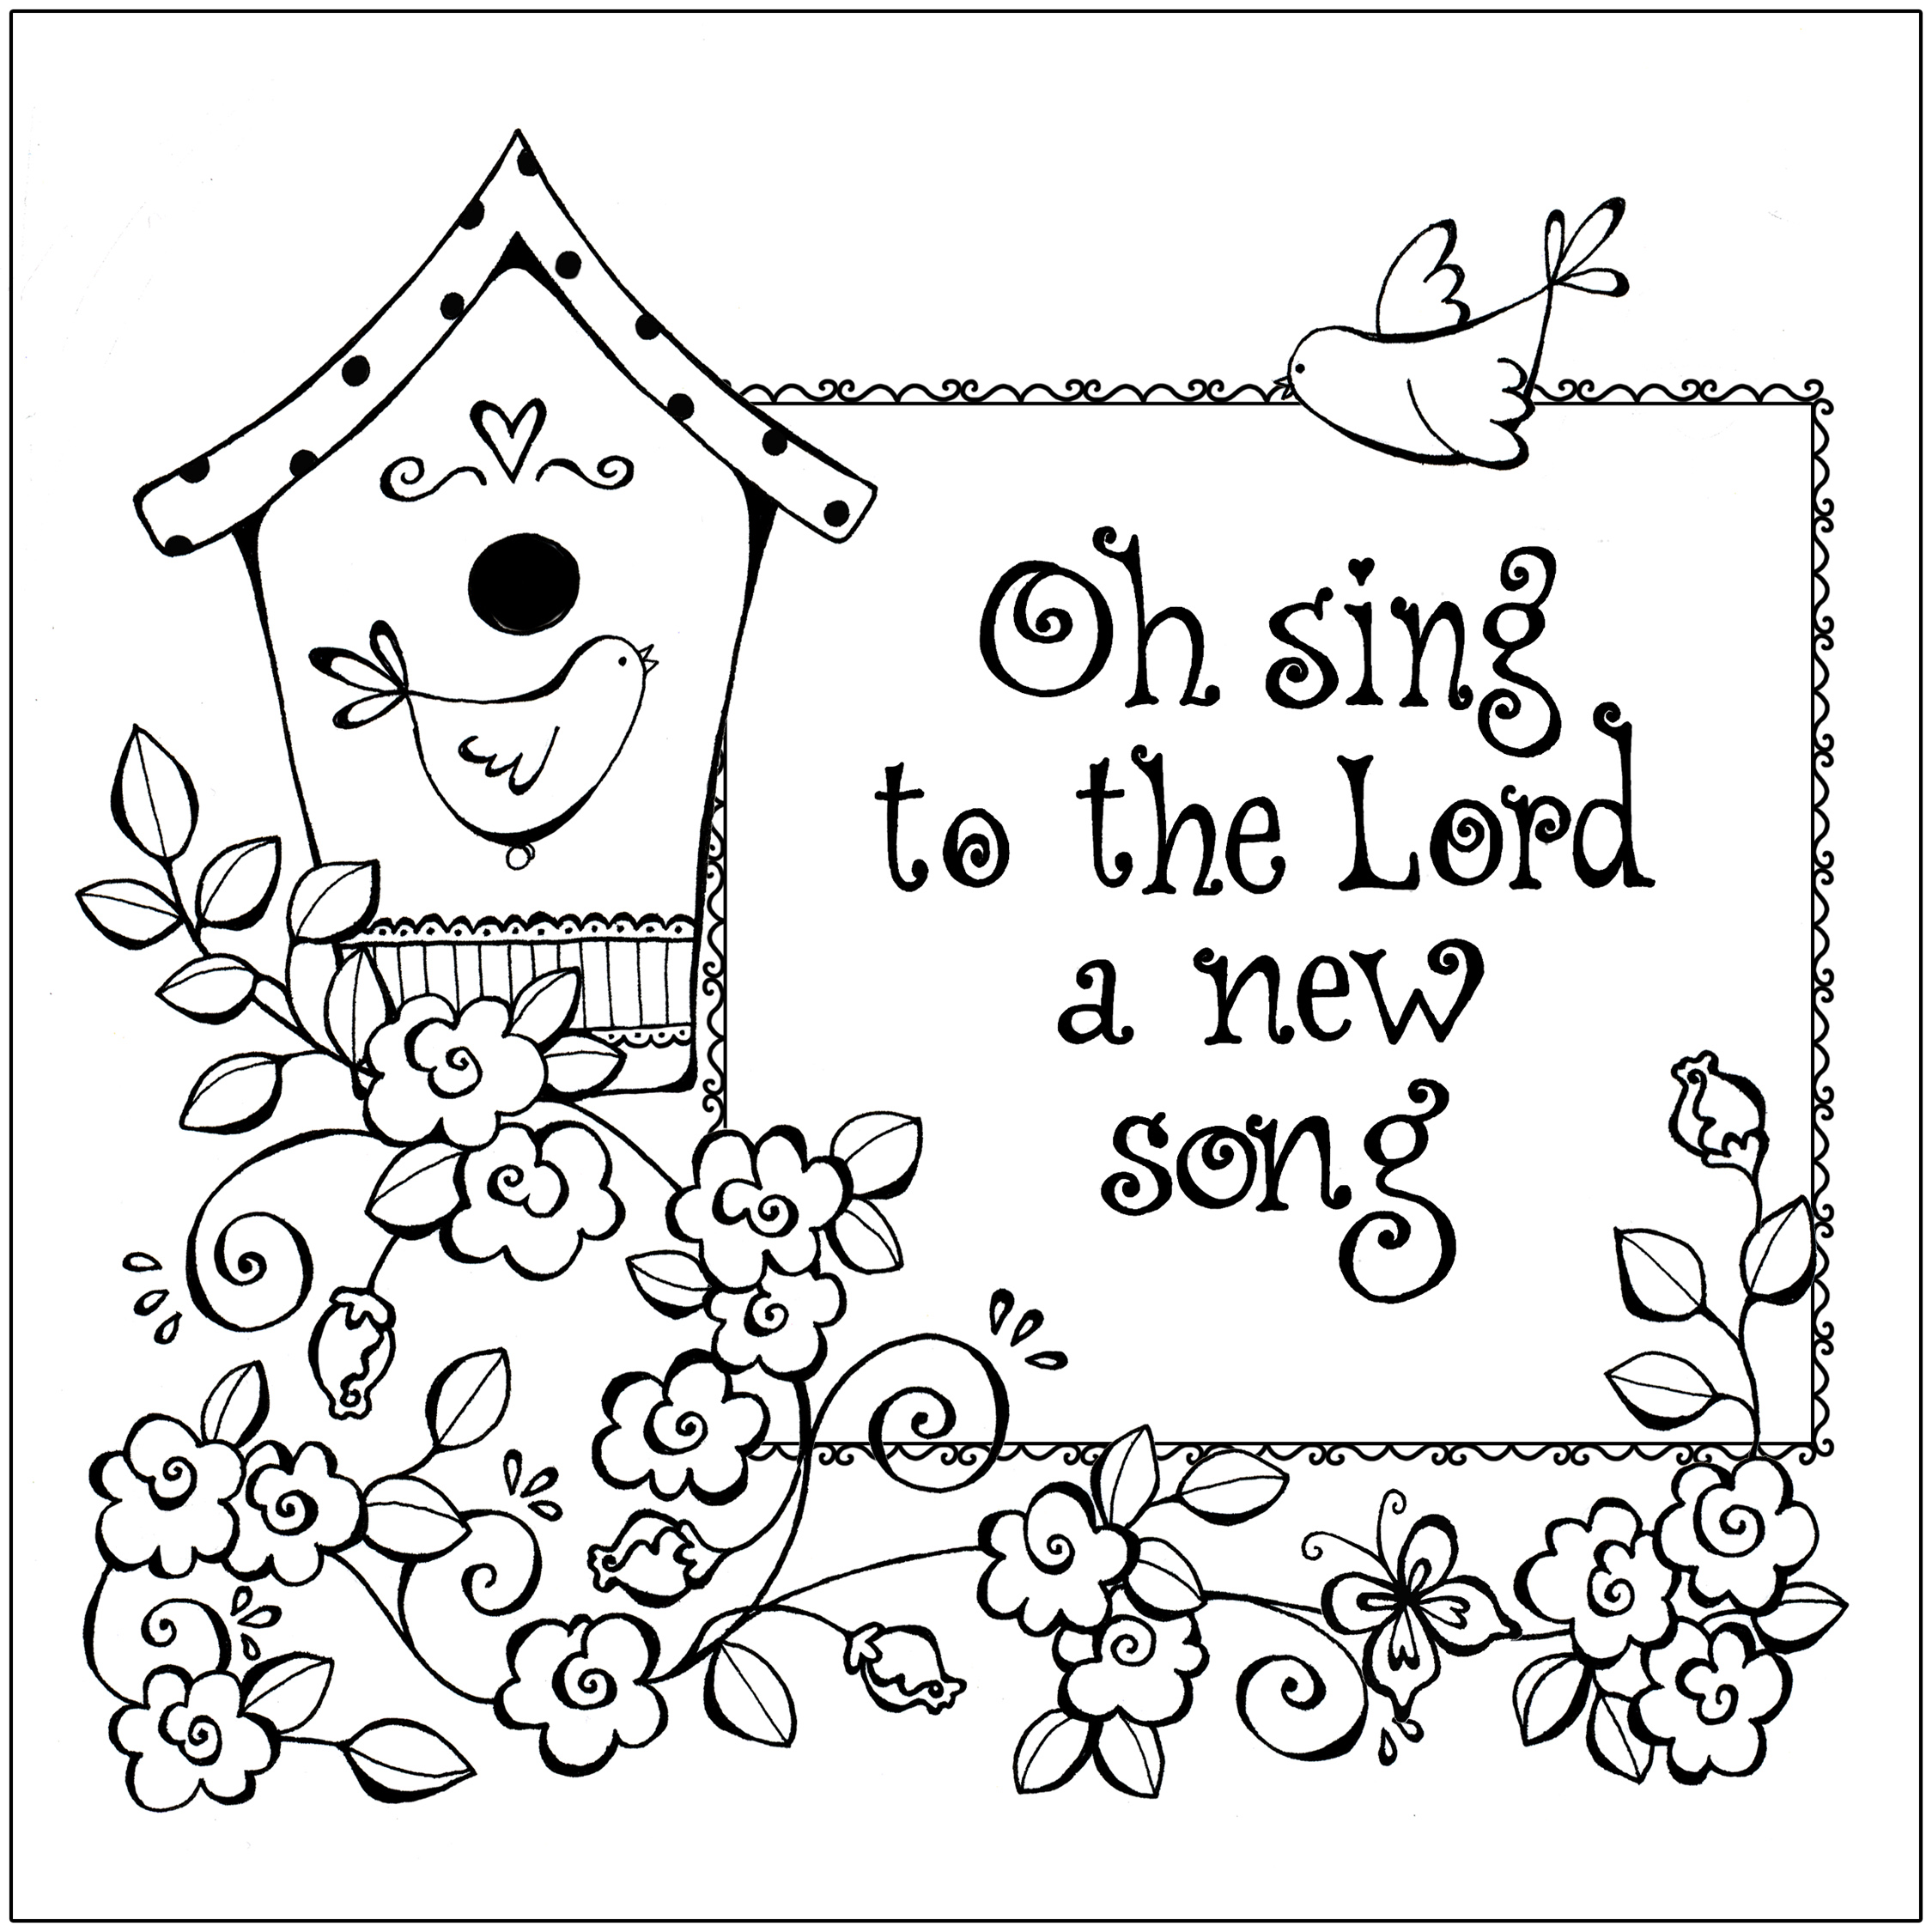 christian coloring page printable images - Coloring Pages Christian